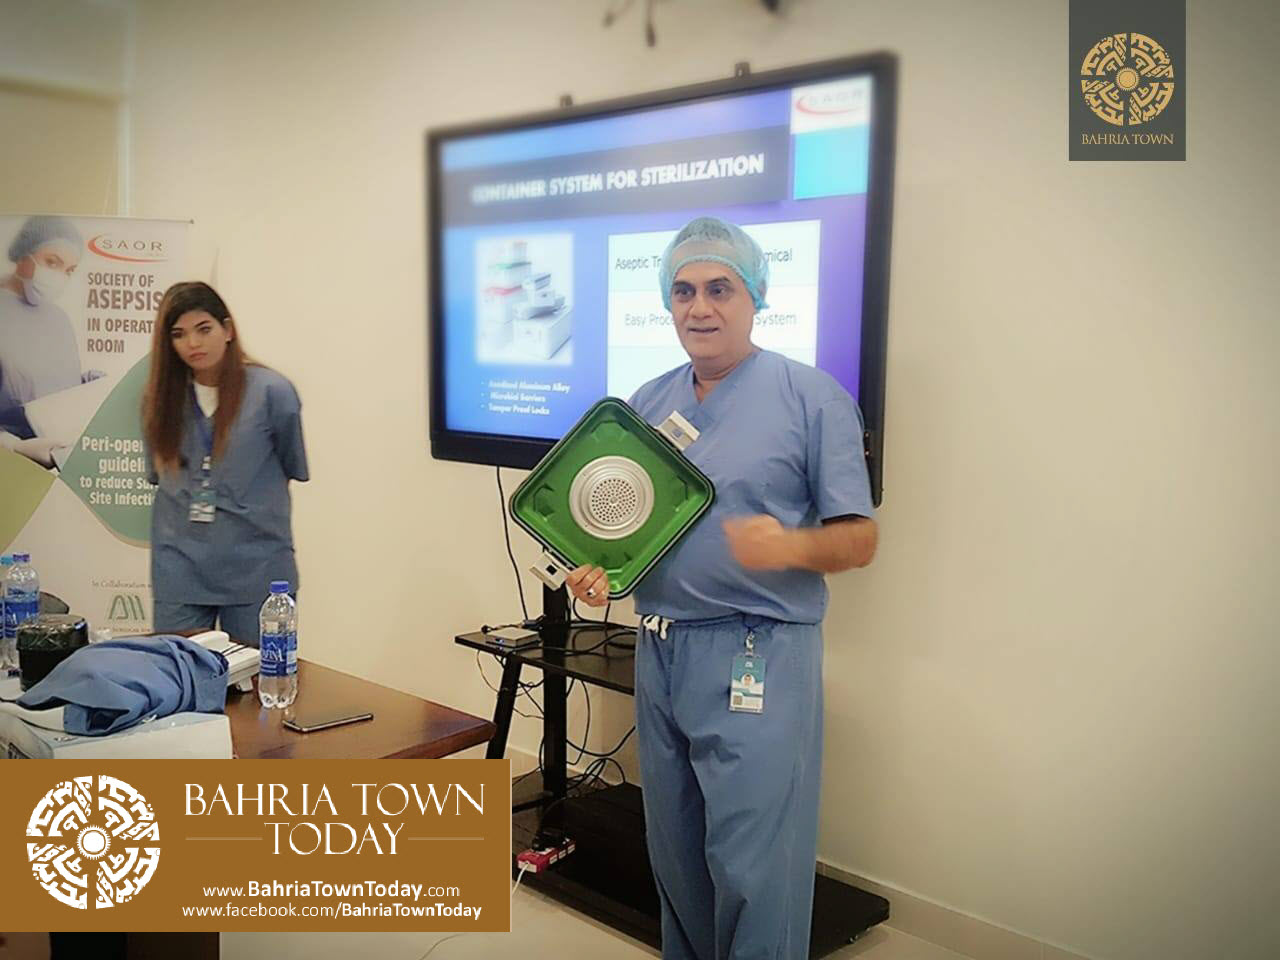 Bahria Town International Hospital Karachi Seminar on Awareness of Asepsis in Operation Theatres (4)